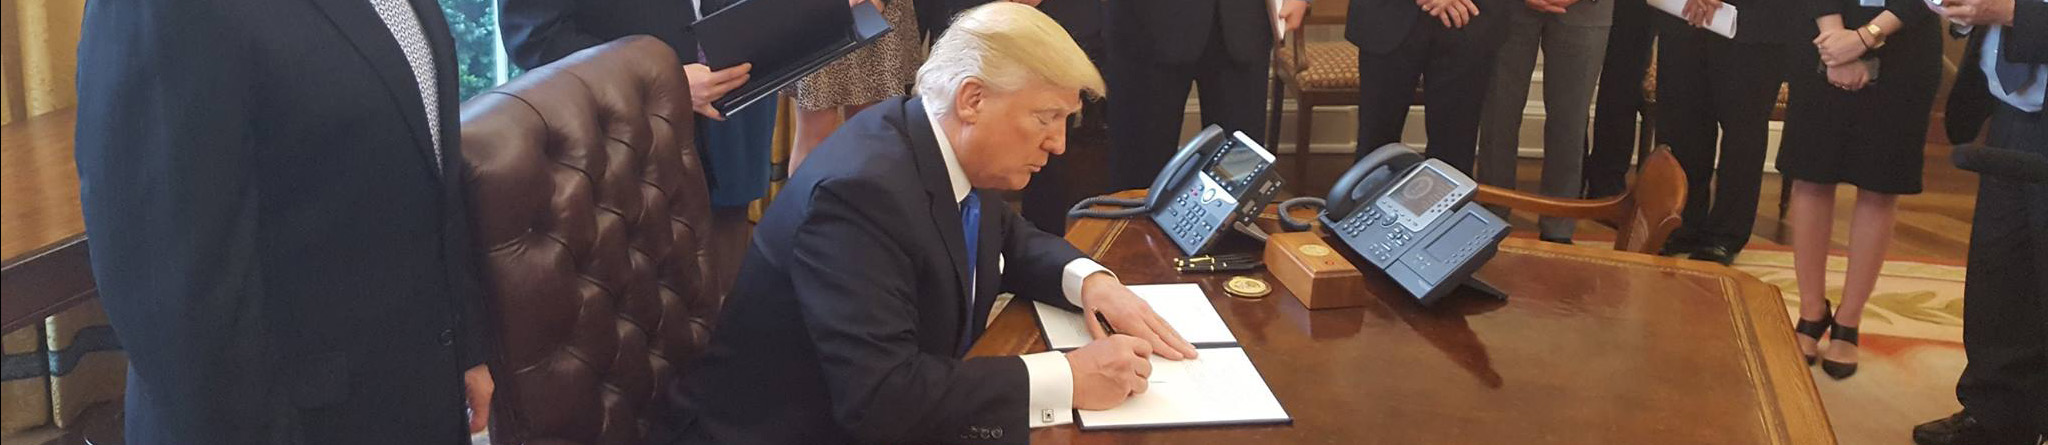 President Donald J. Trump signs Executive Order